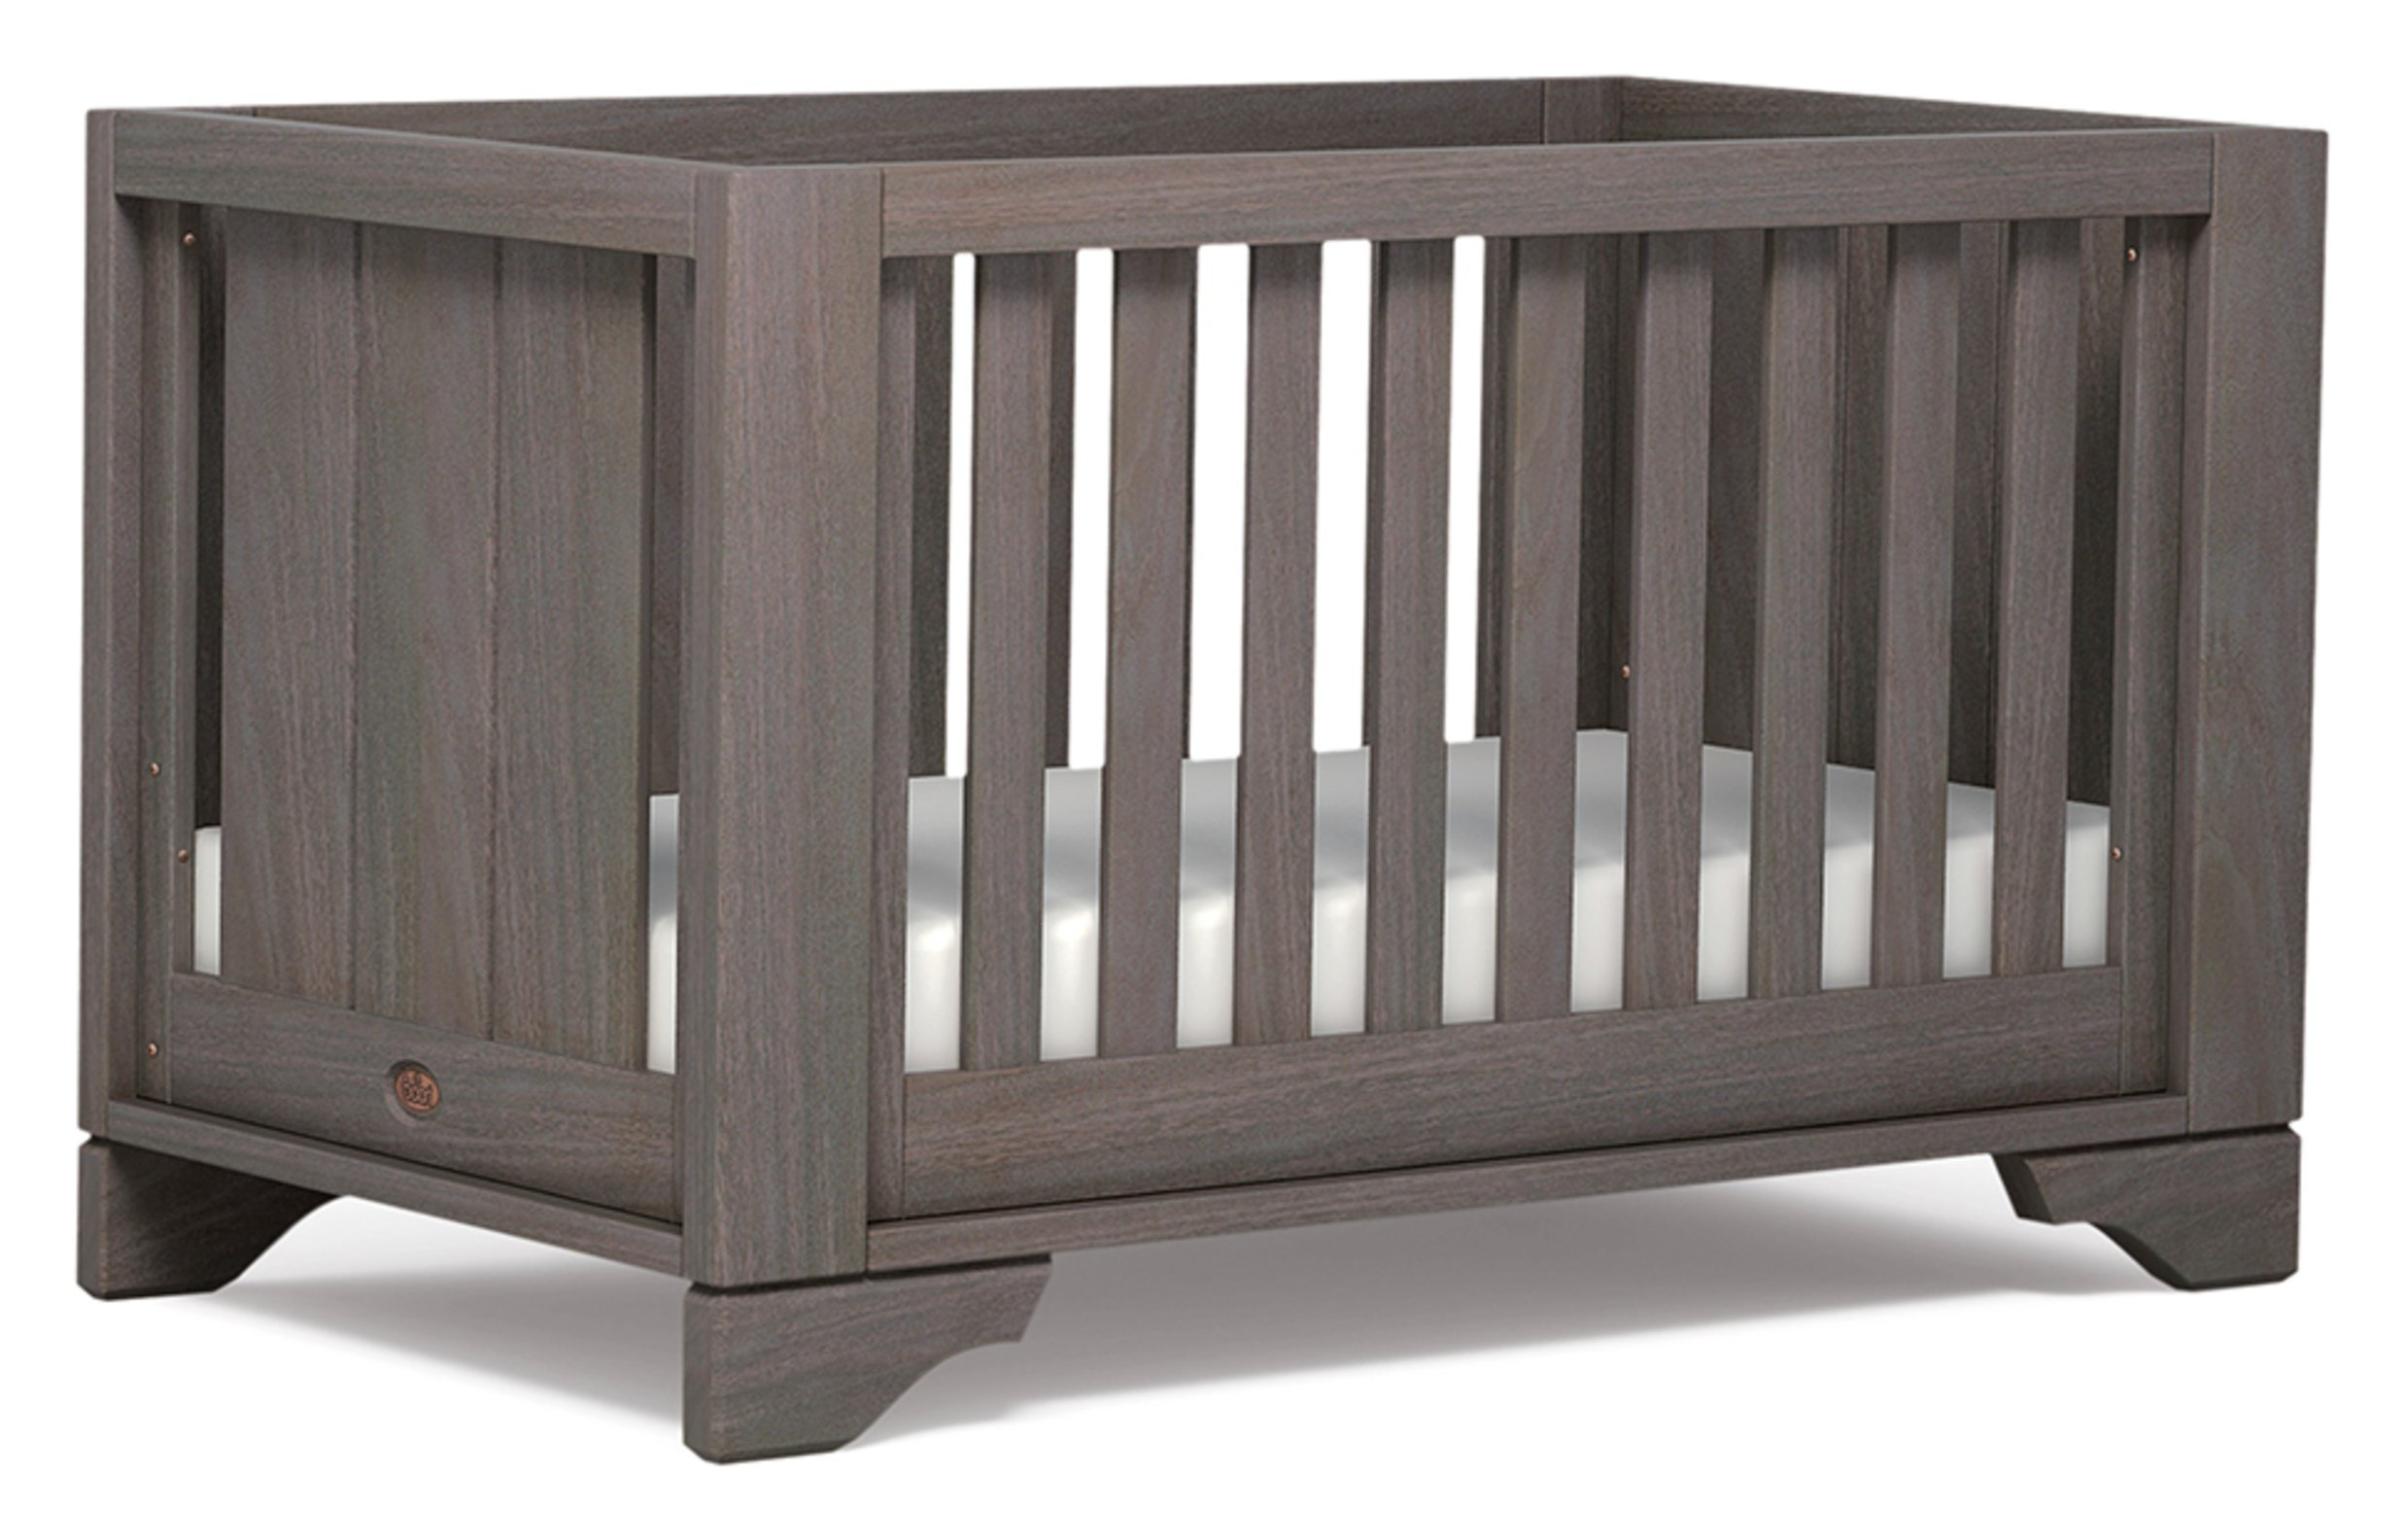 Image of Eton Expandable Cot Bed - Mocha